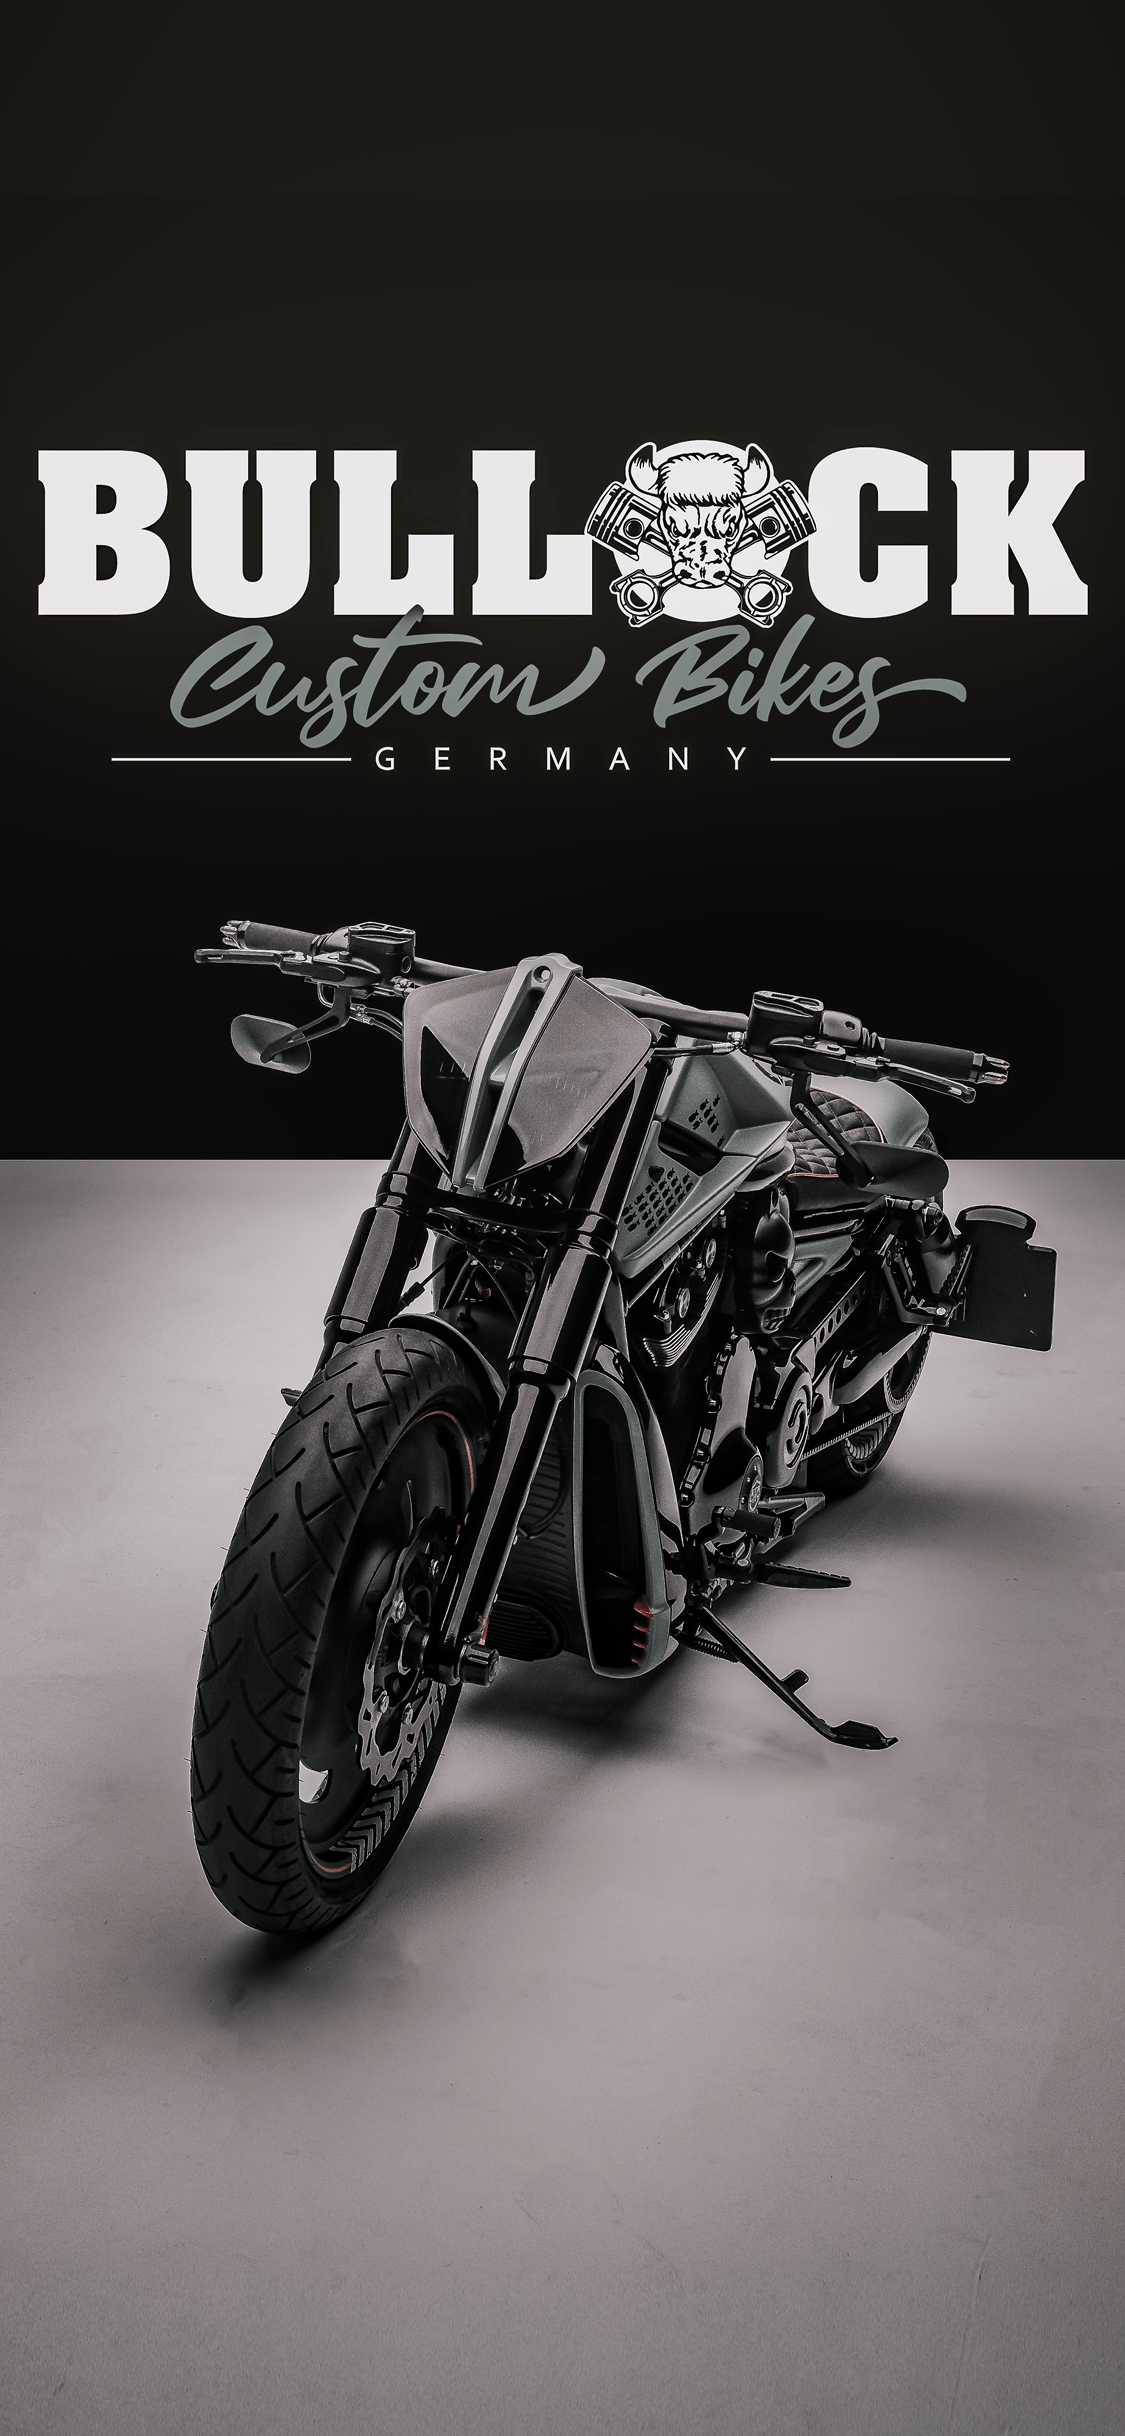 Bullock Custom-Bikes Wallpaper Handy